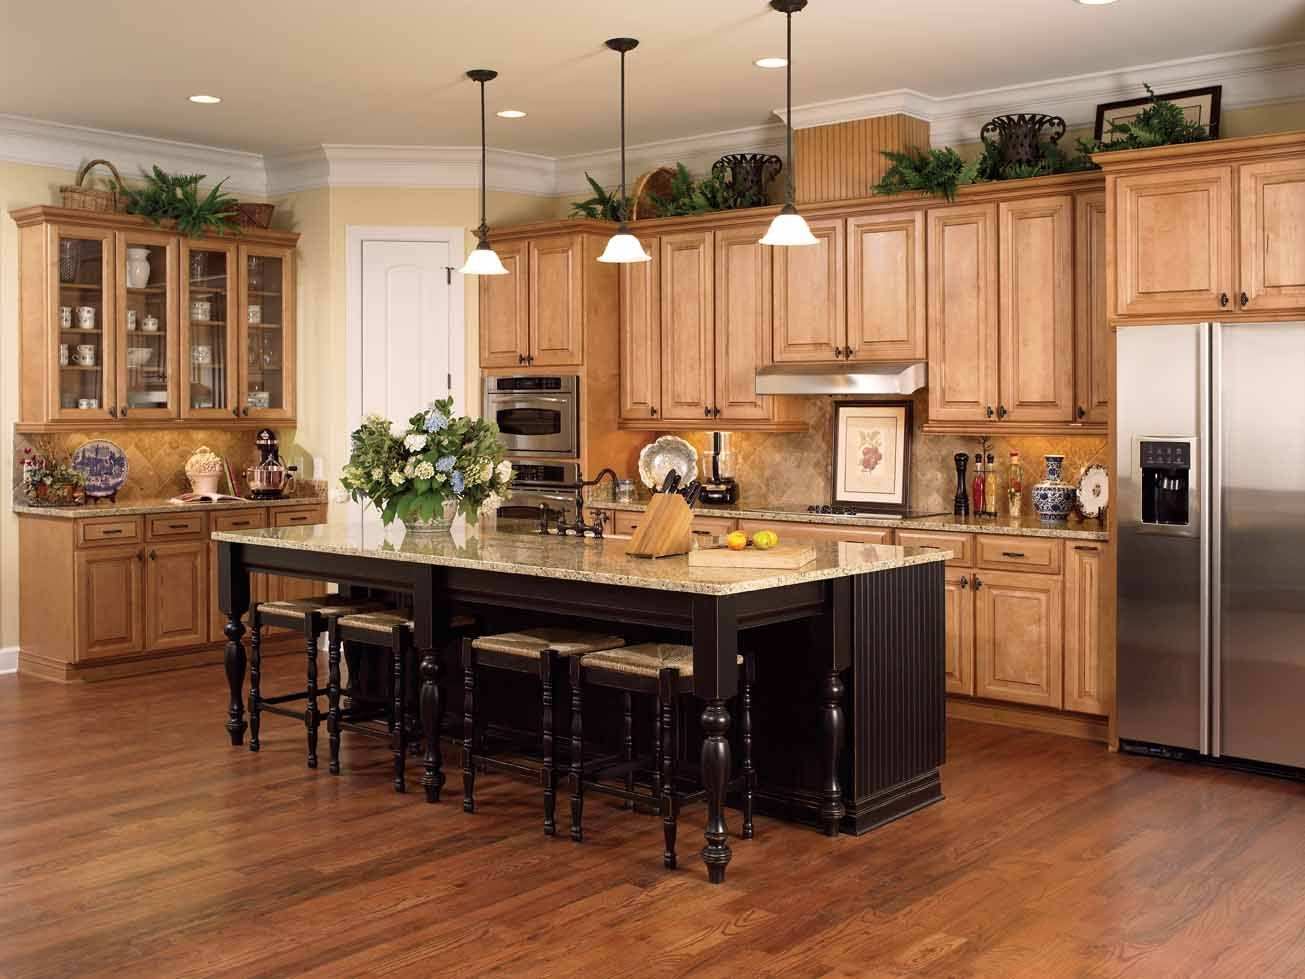 Best Honey Colored Oak Cabinets With Dark Wood Floor And Black 400 x 300